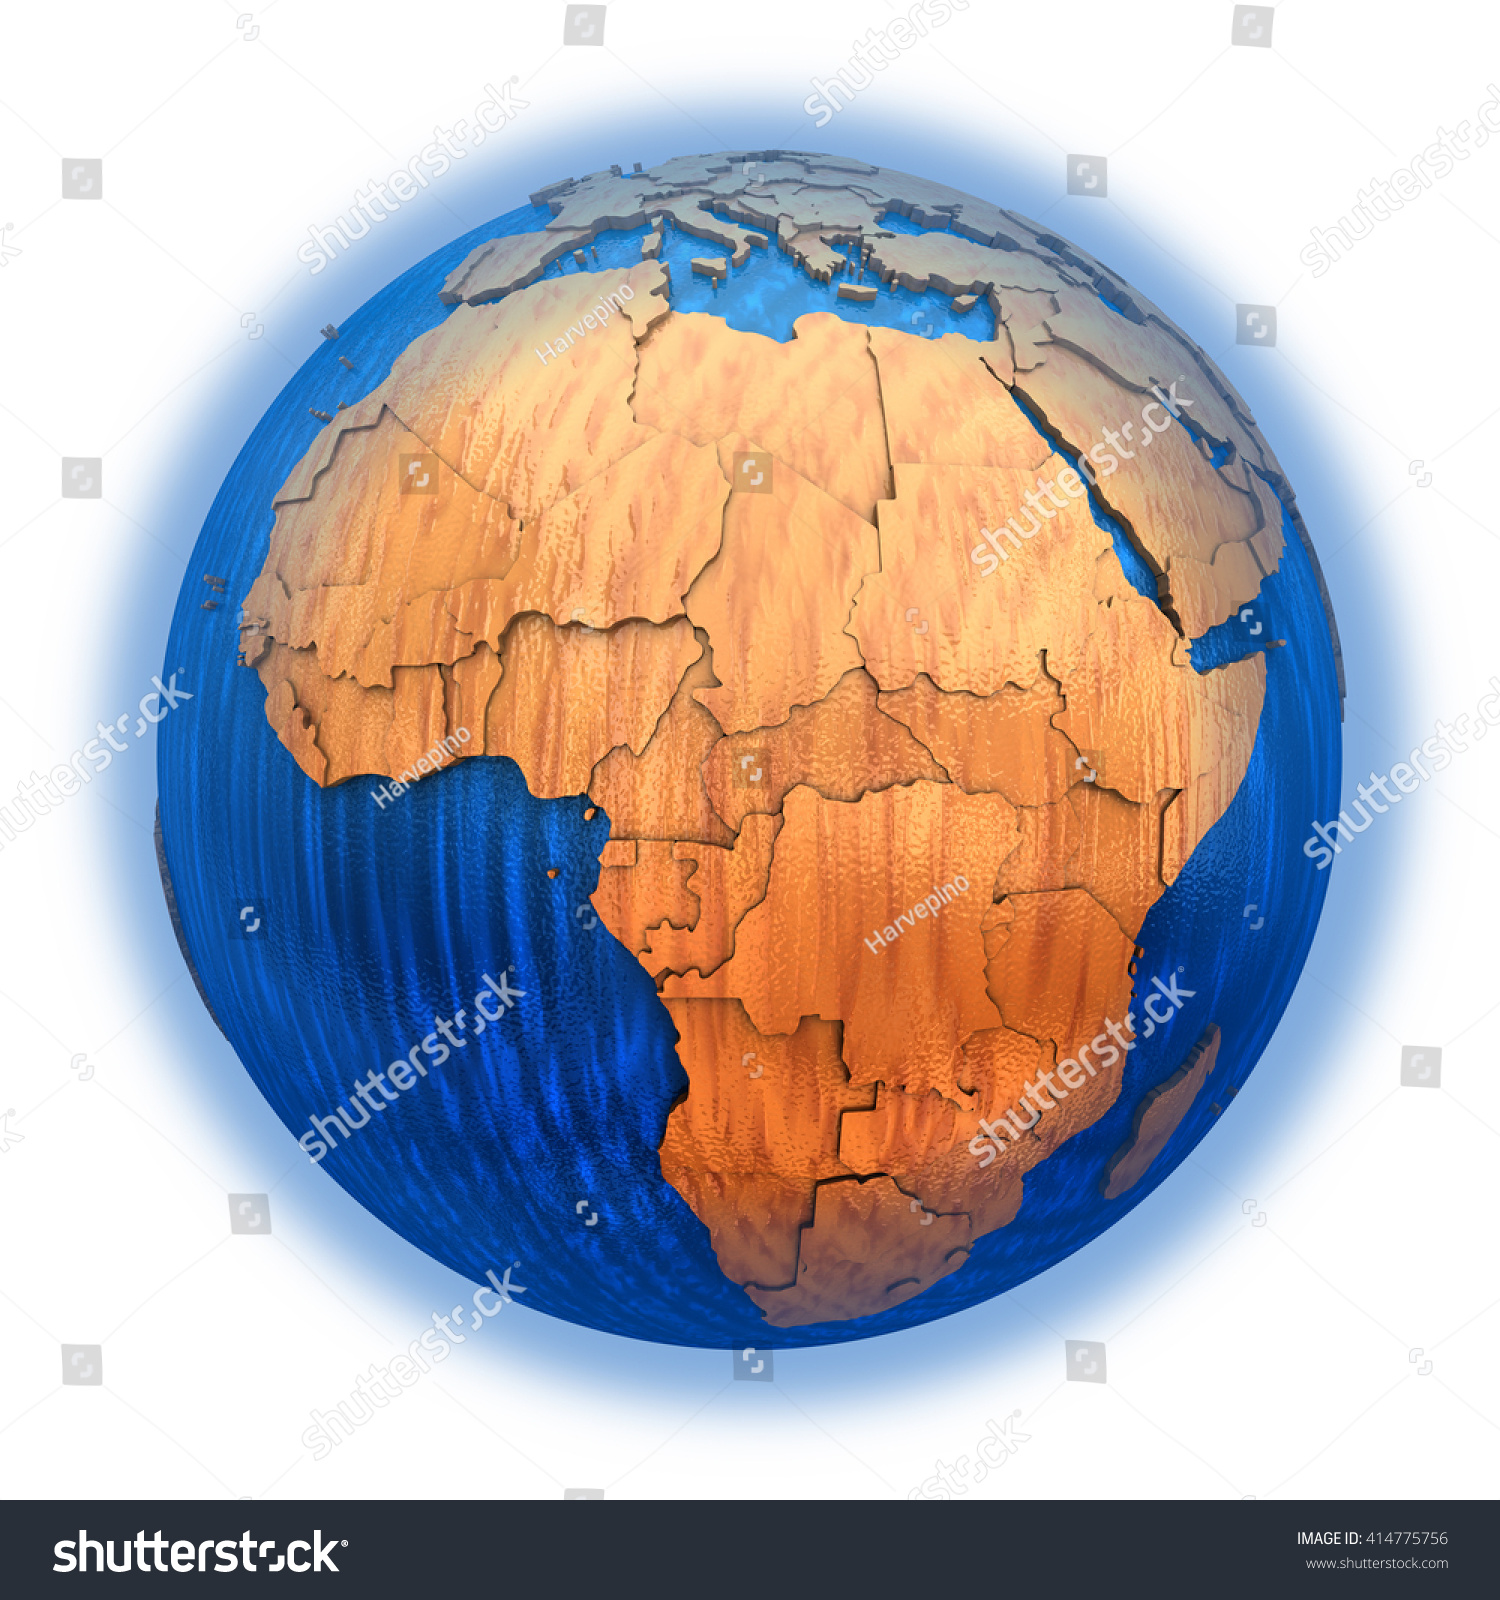 hight resolution of africa on wooden model of planet earth with embossed continents and visible country borders 3d